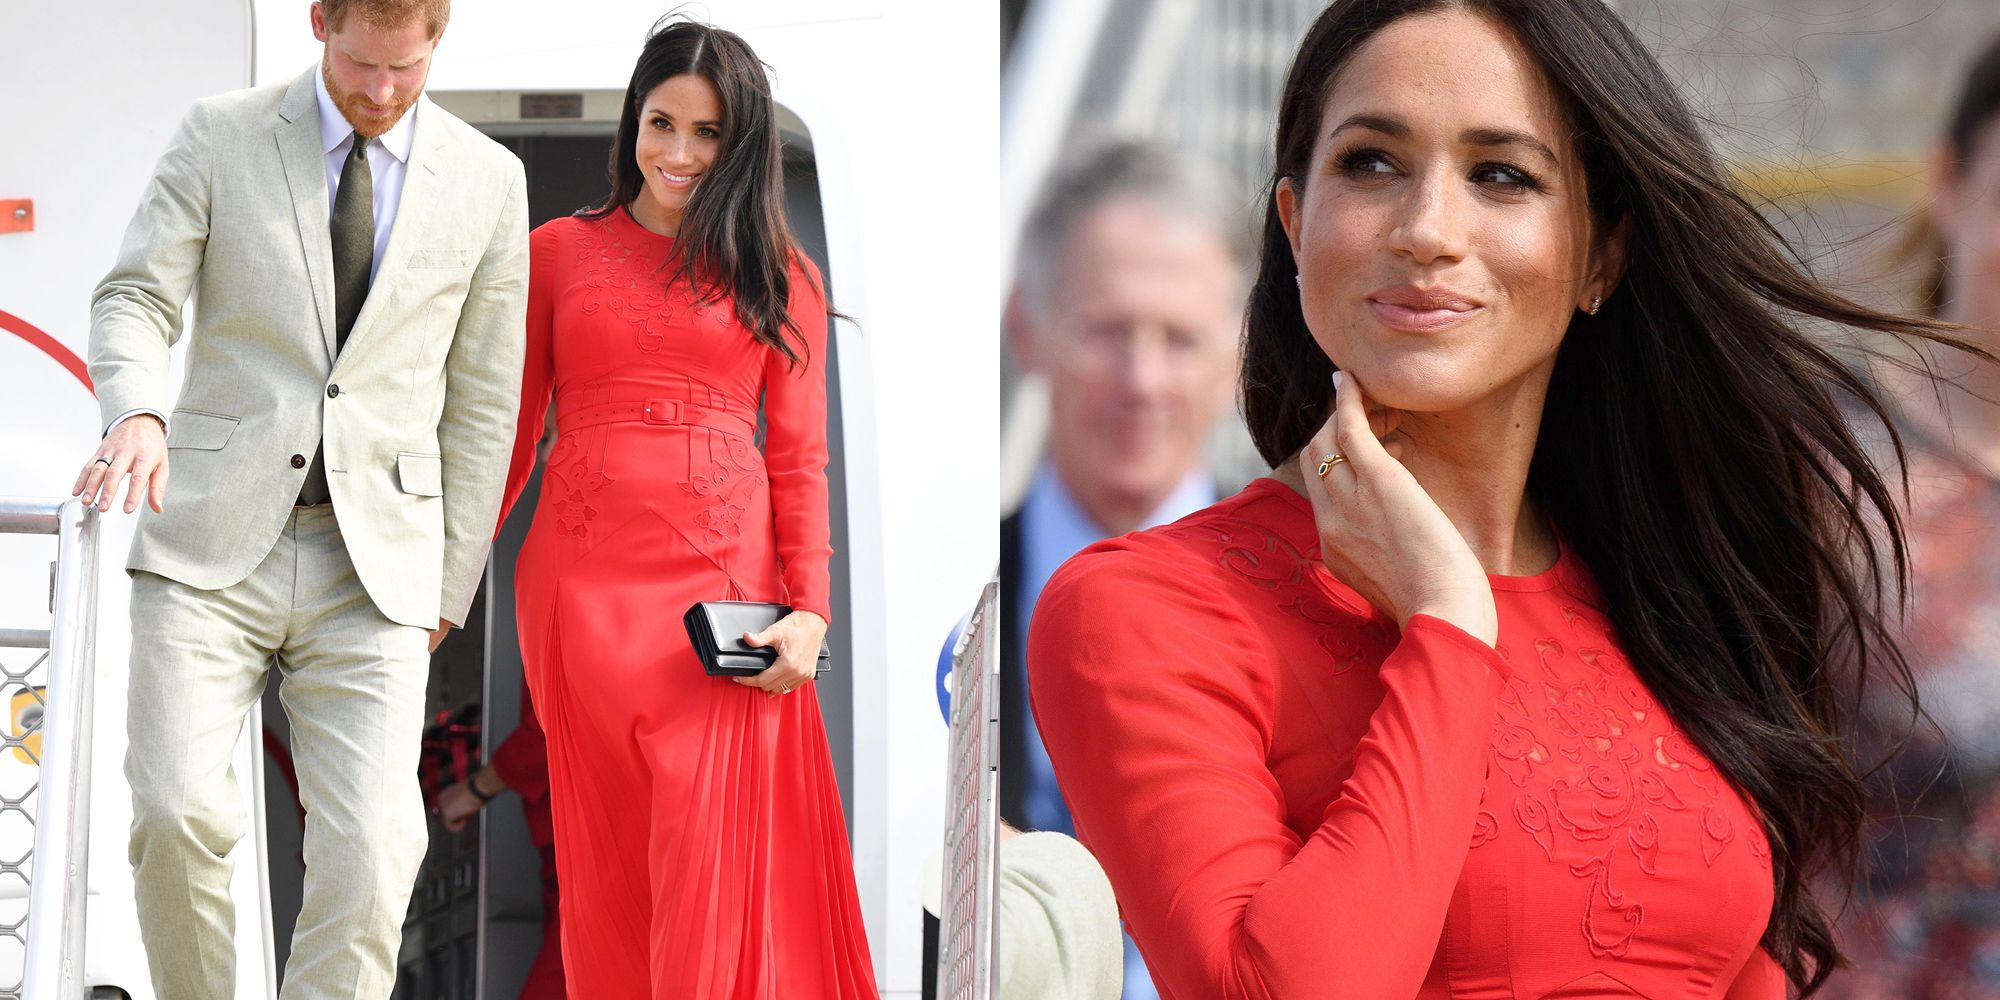 7a044992b1027 The Duchess of Sussex stuns in statement red dress as she arrives in Tonga